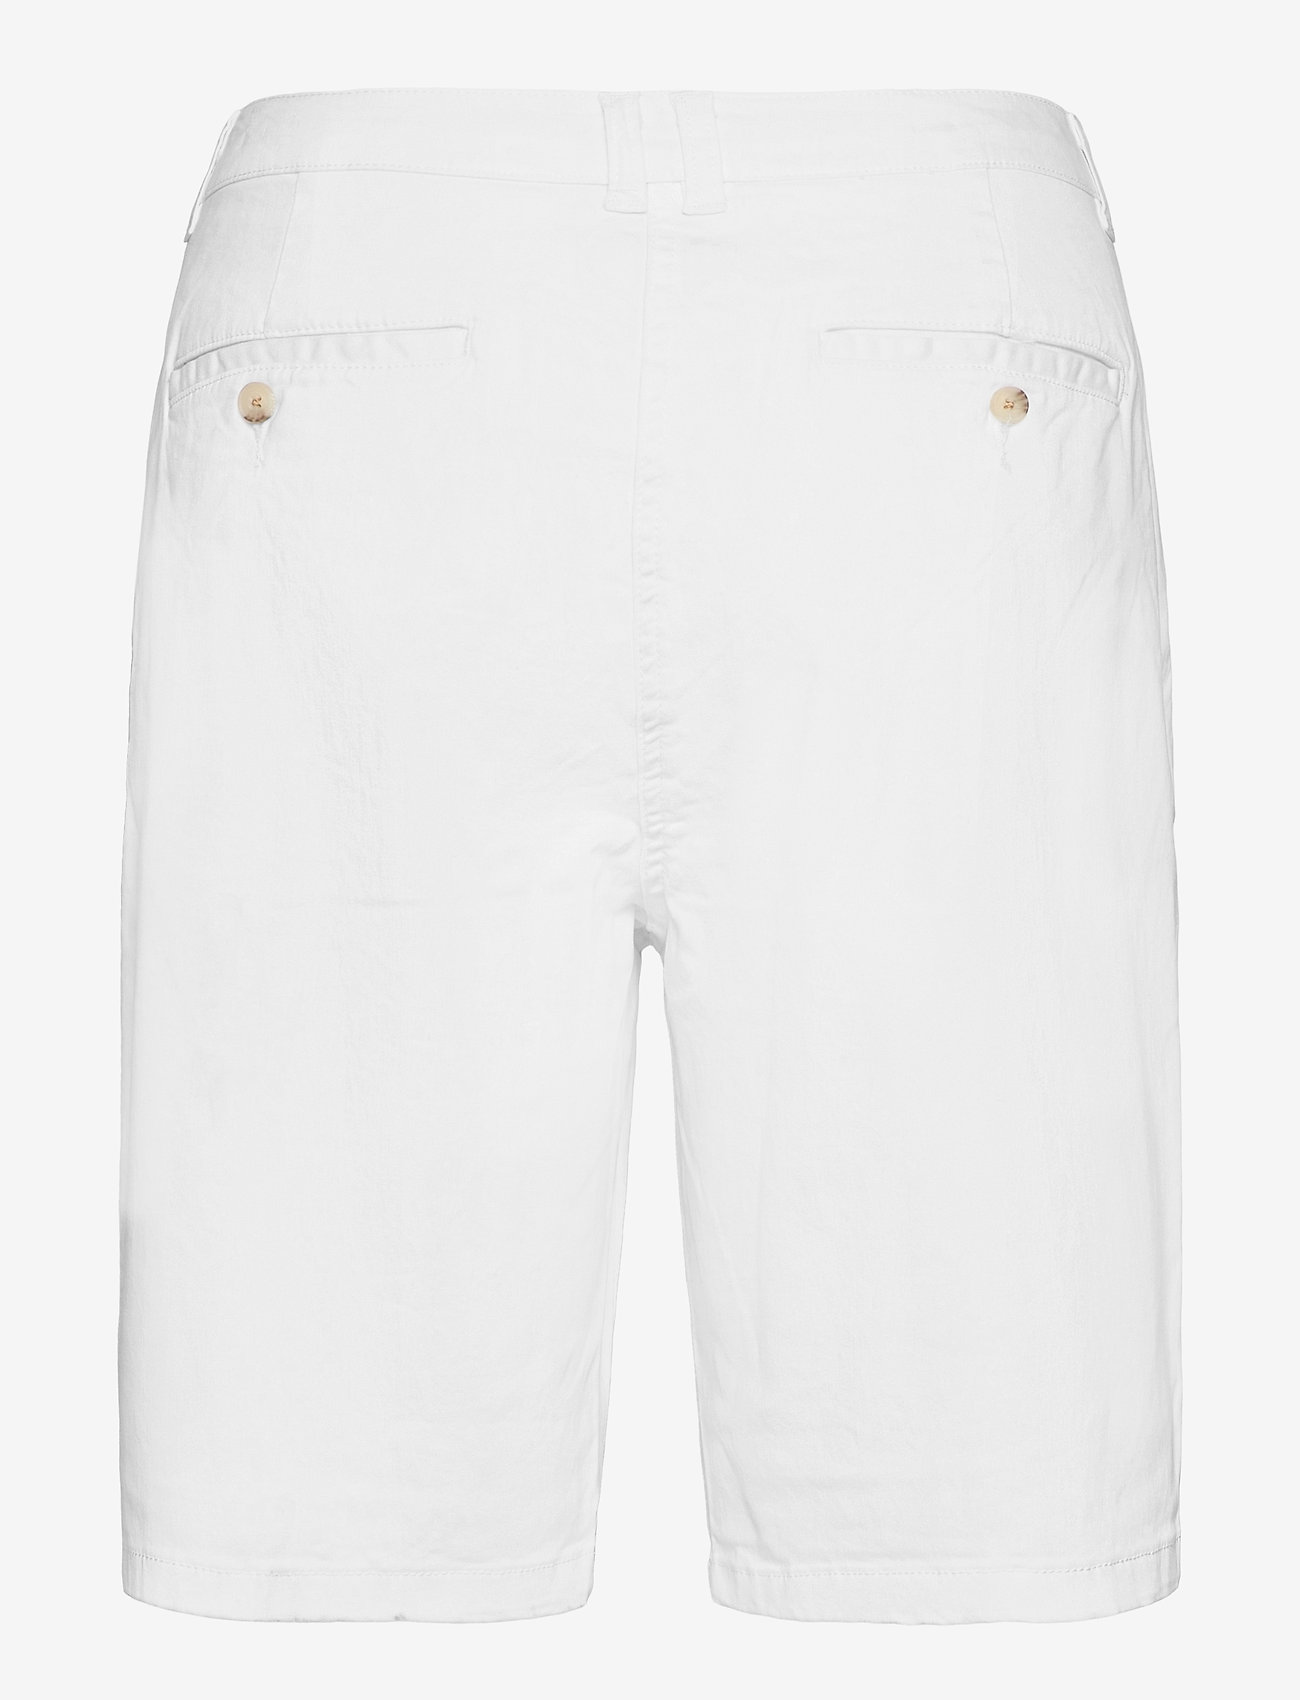 Joules - Cruiselong - chino shorts - brghtwh - 1